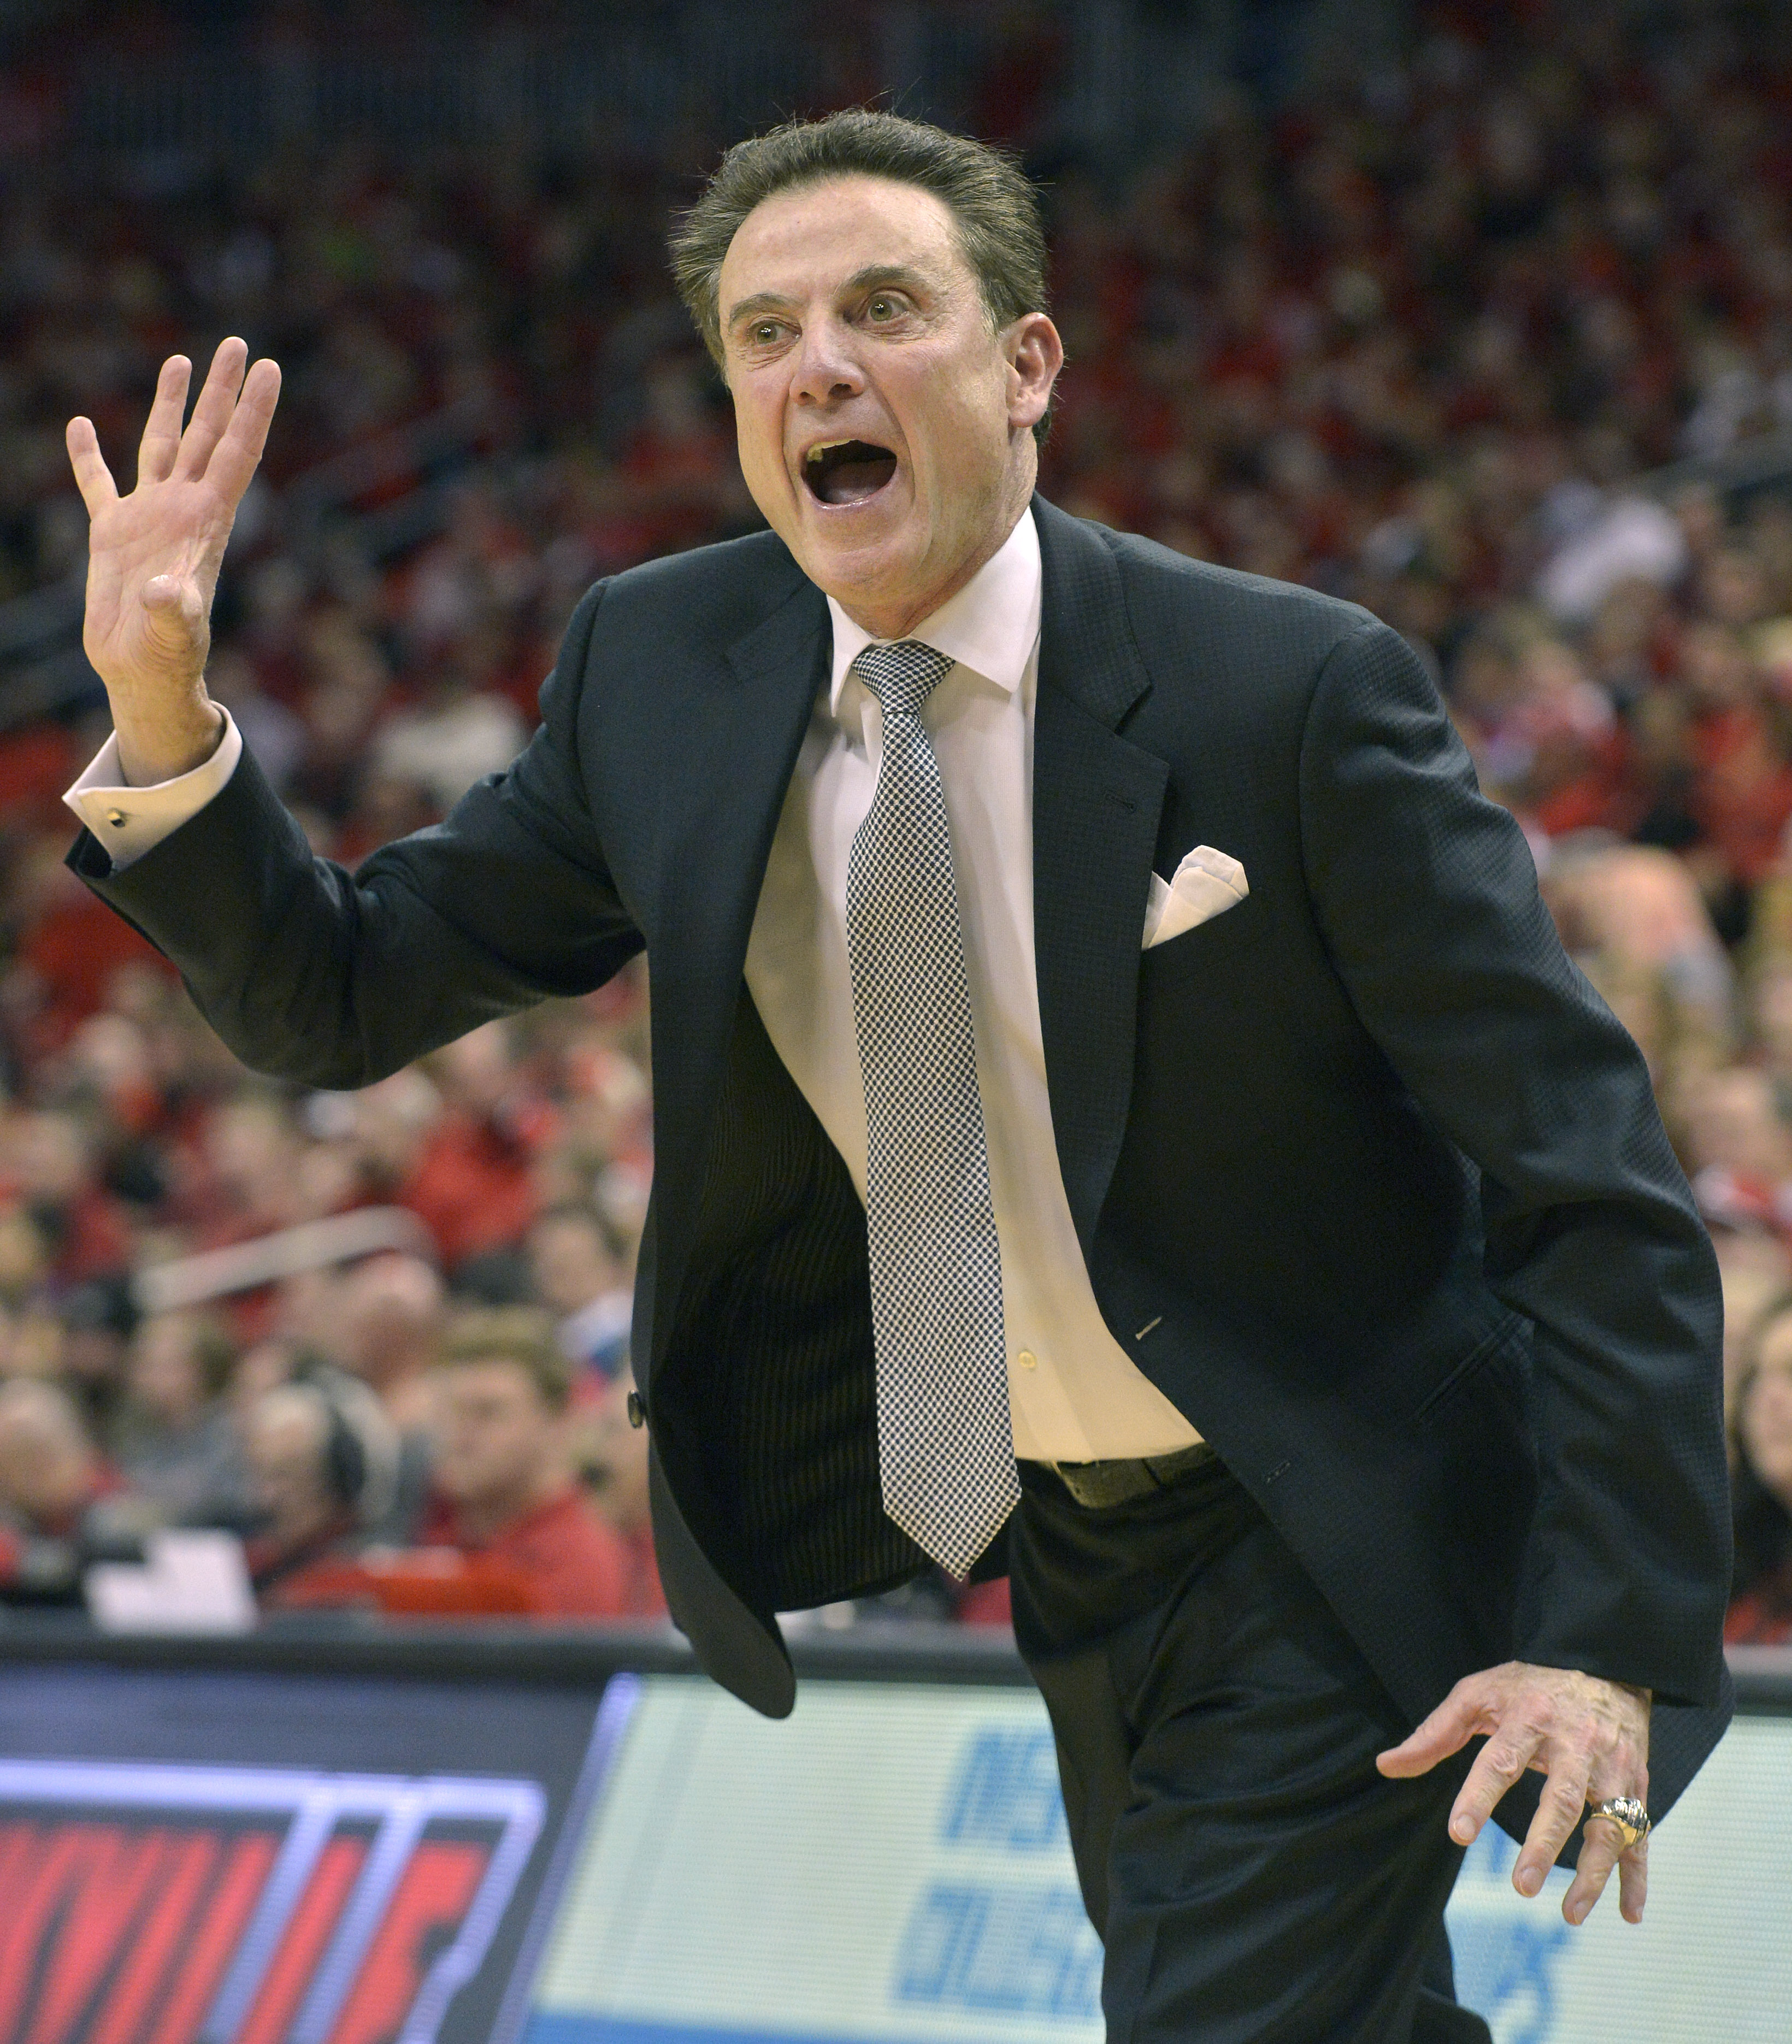 Louisville's head coach Rick Pitino shouts instructions to his team during the first half of an NCAA college basketball game against Georgia Tech, Tuesday, March 1, 2016 in Louisville Ky. Louisville won 56-53. (AP Photo/Timothy D. Easley)